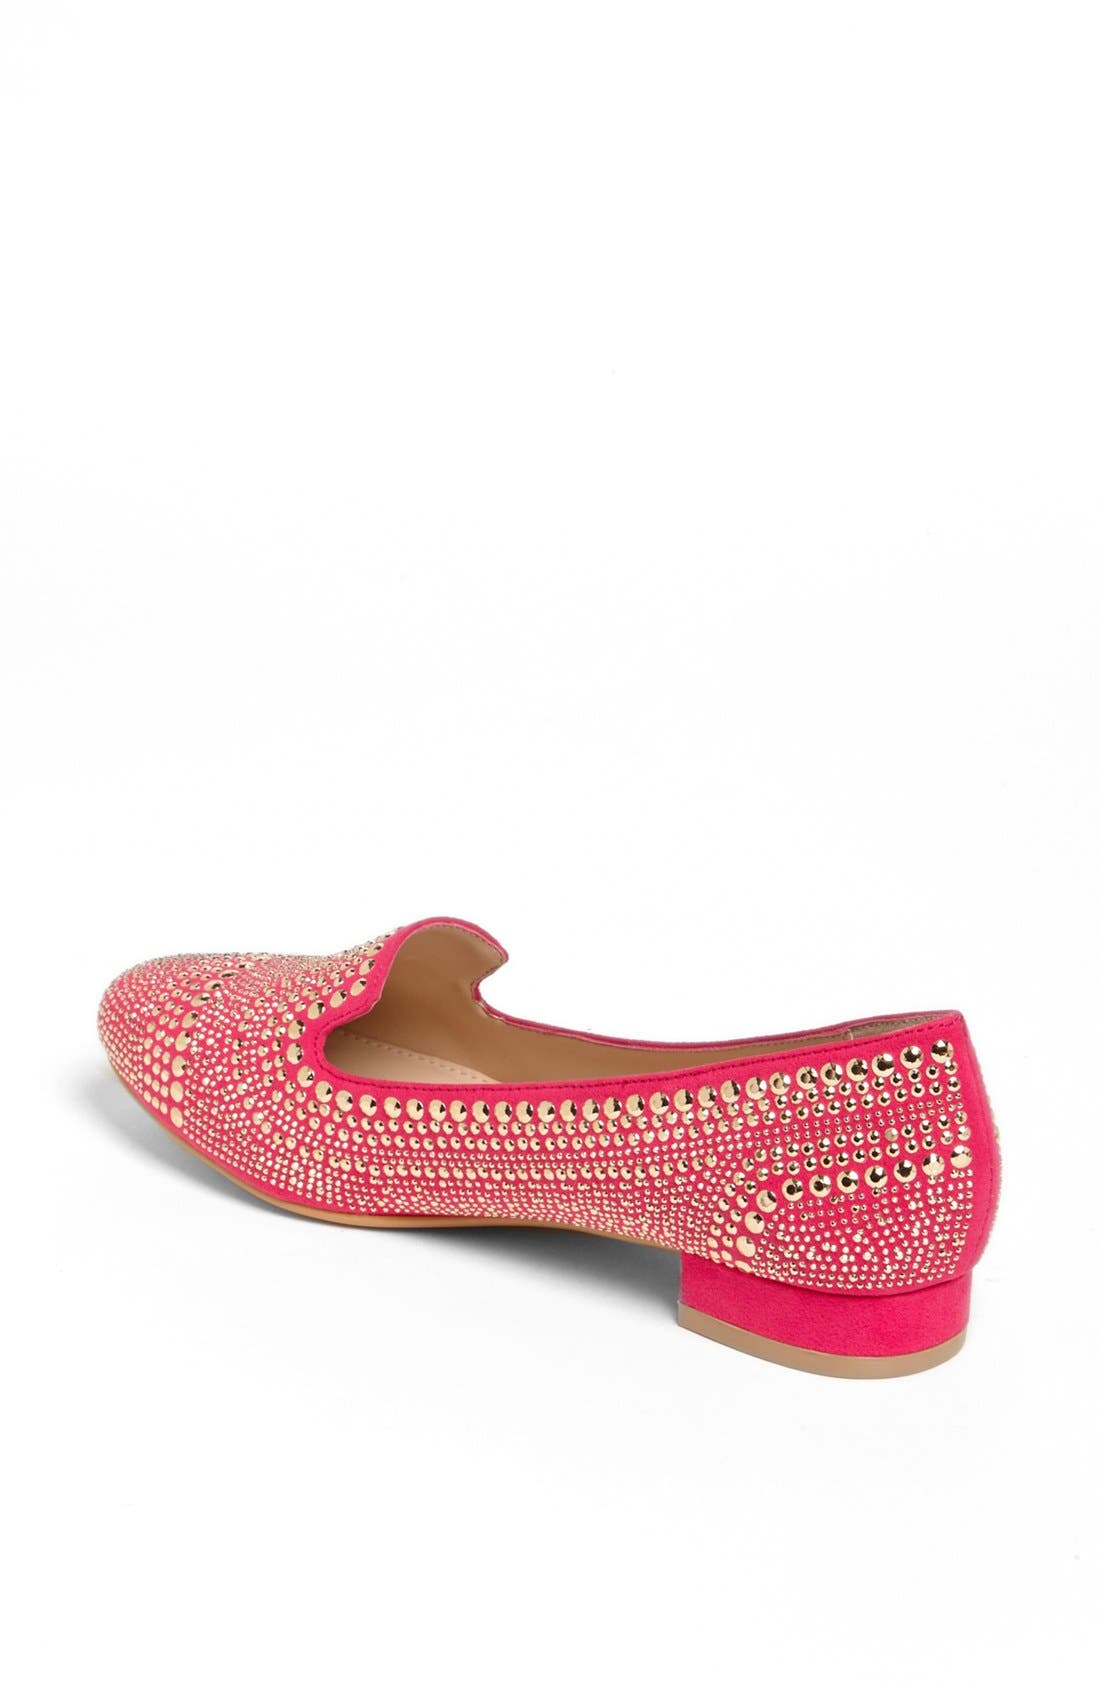 Alternate Image 2  - Carvela Kurt Geiger 'Lark' Smoking Slipper